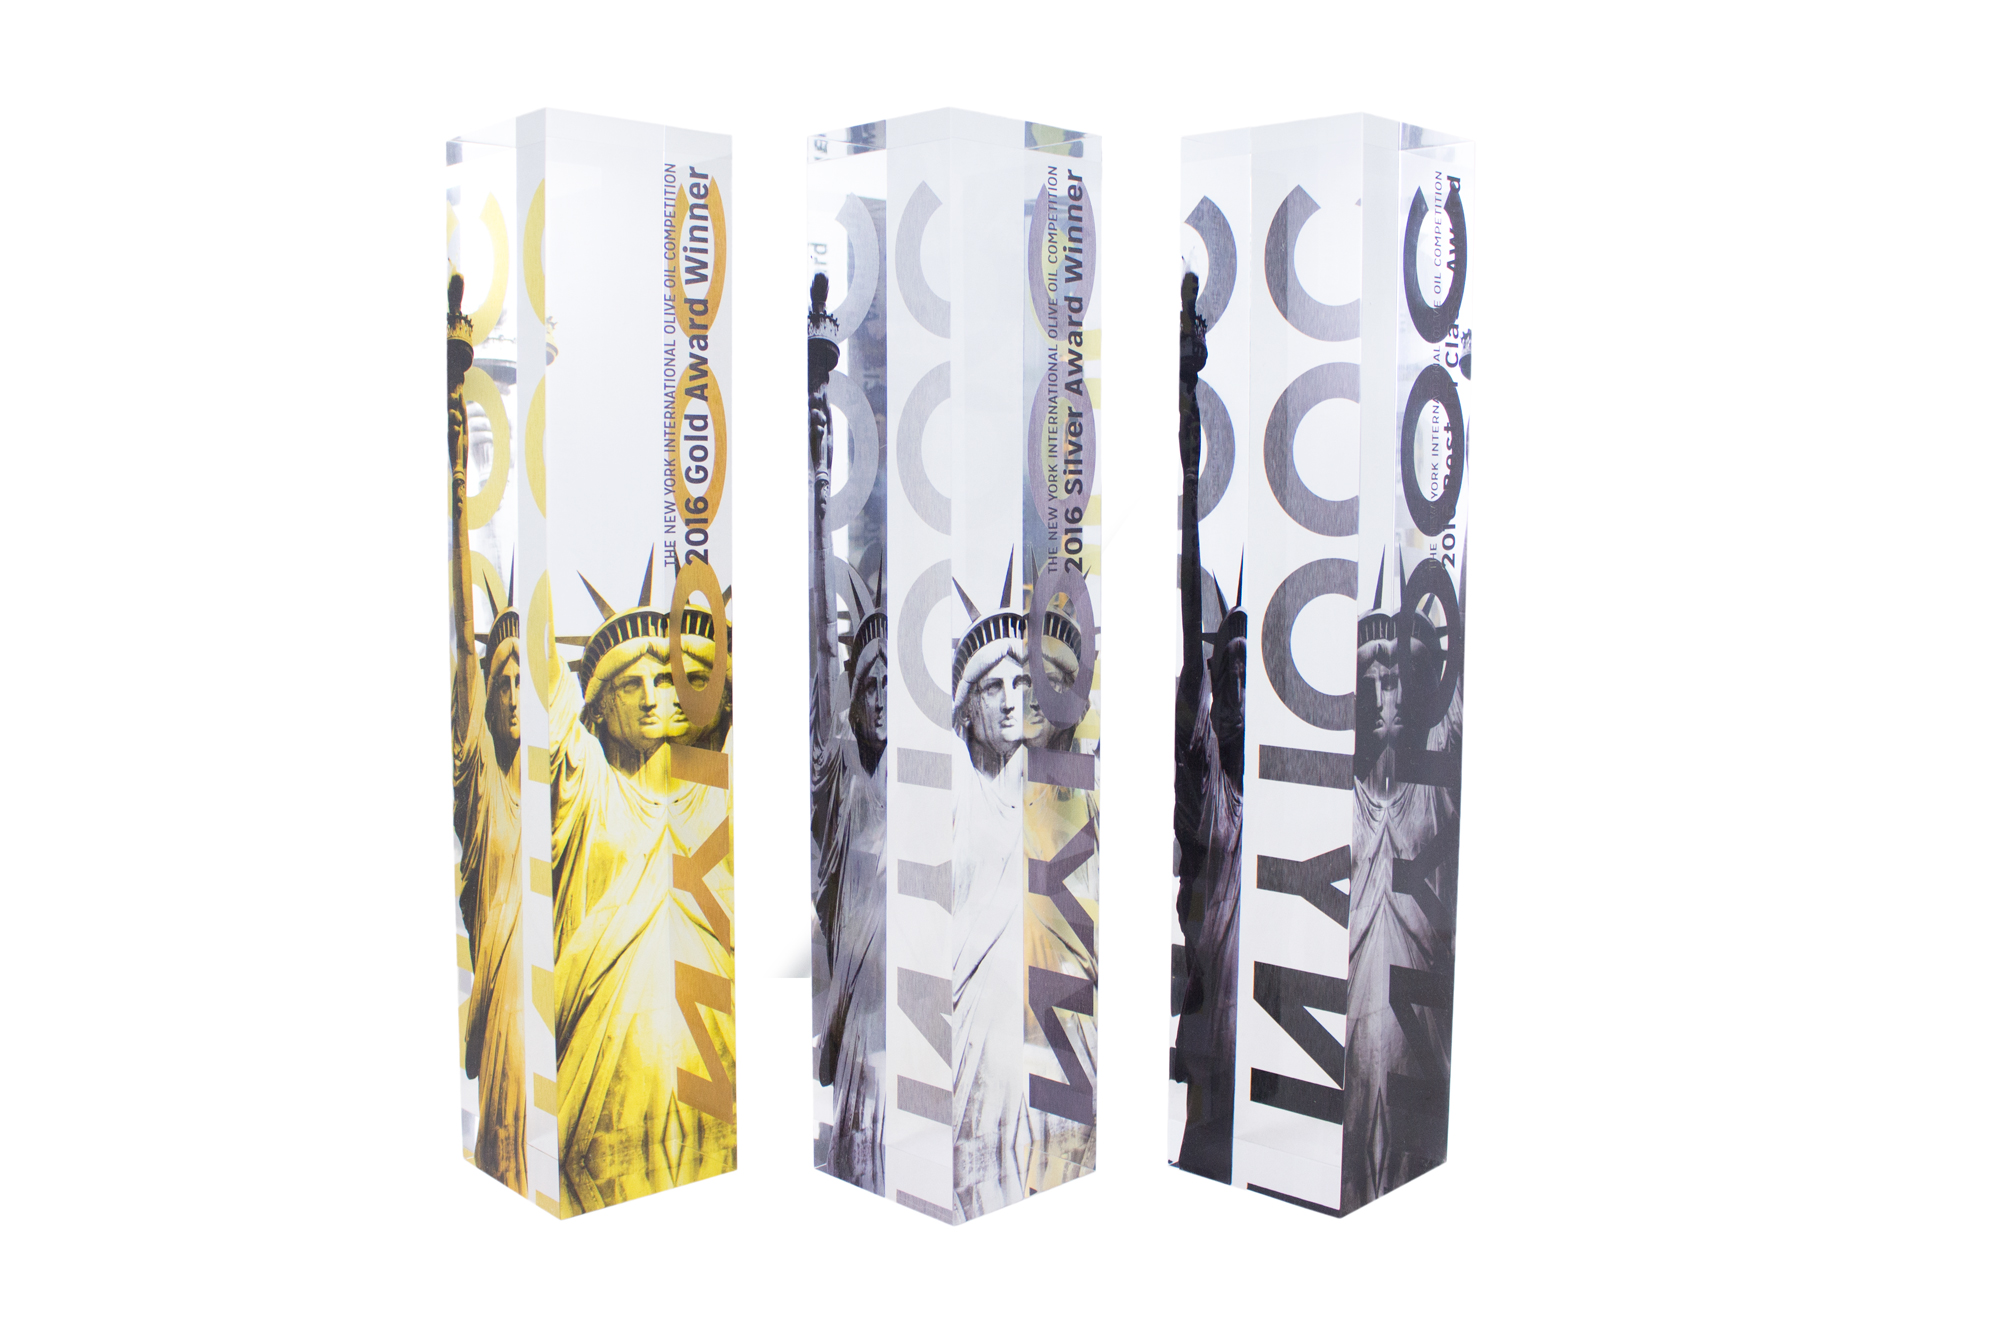 modern acrylic lucite awards not glass or crystal